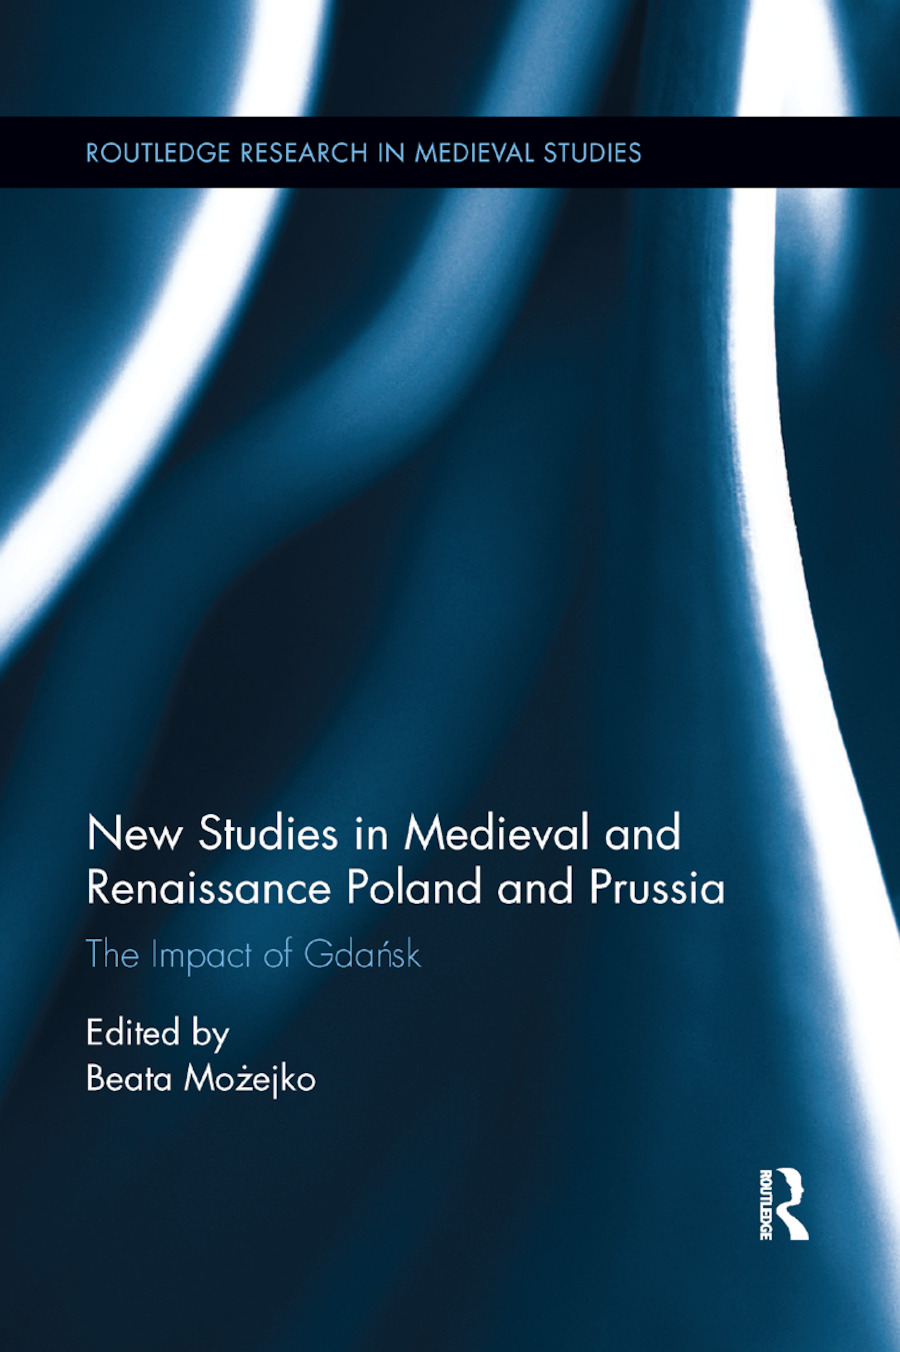 New Studies in Medieval and Renaissance Gdansk, Poland and Prussia book cover